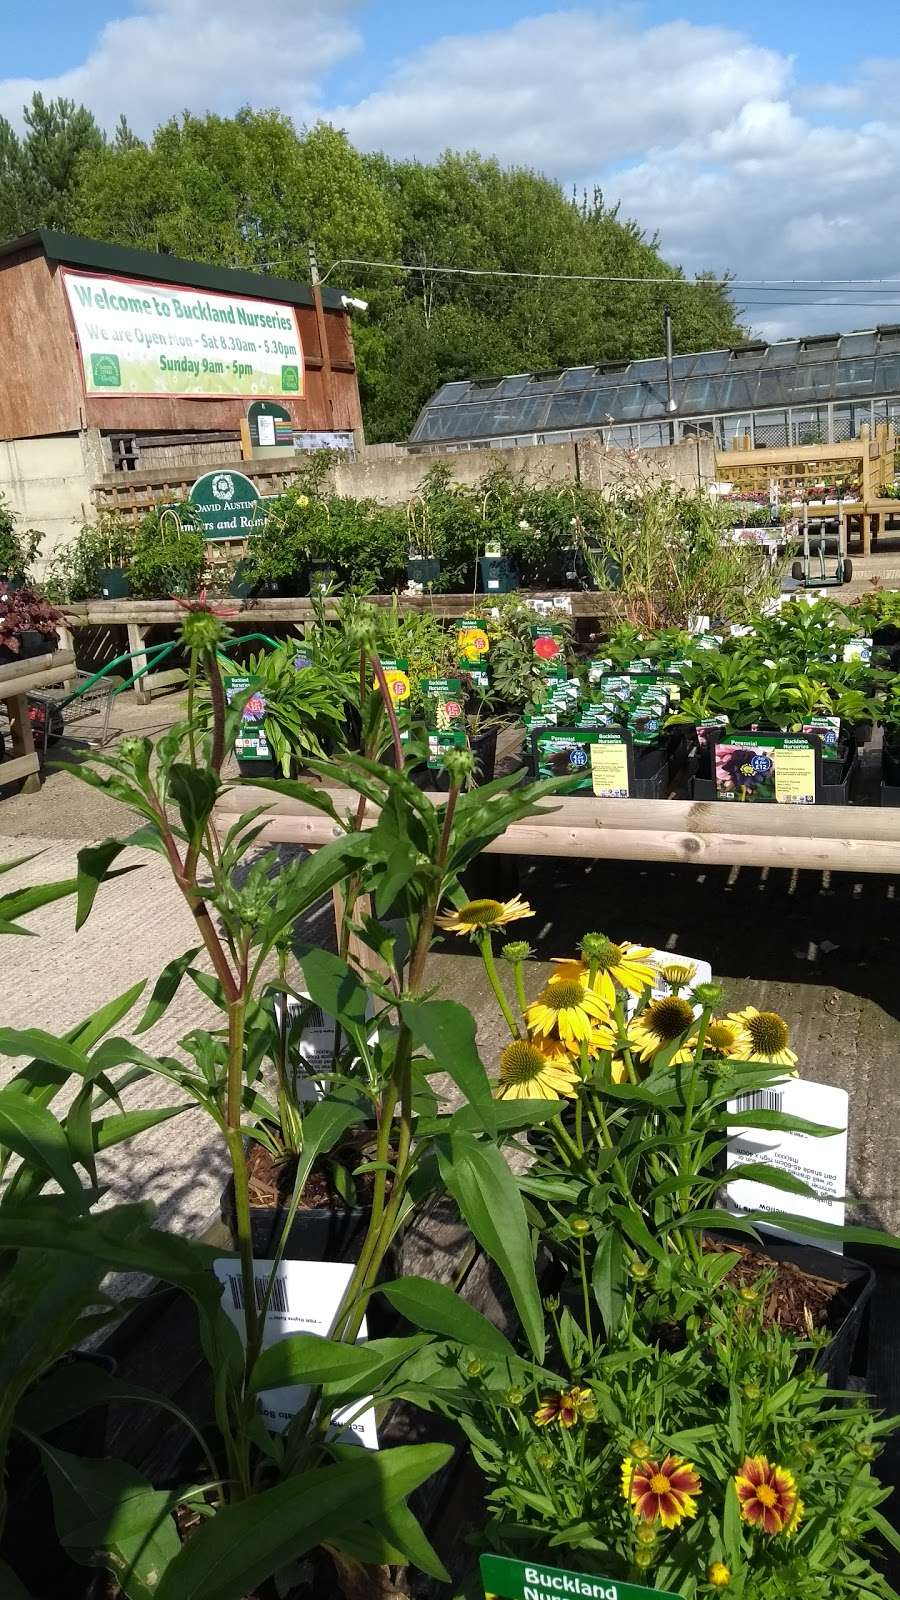 Buckland Nurseries Garden Centre - store  | Photo 2 of 10 | Address: Reigate Rd, Reigate, Betchworth RH2 9RE, UK | Phone: 01737 242990